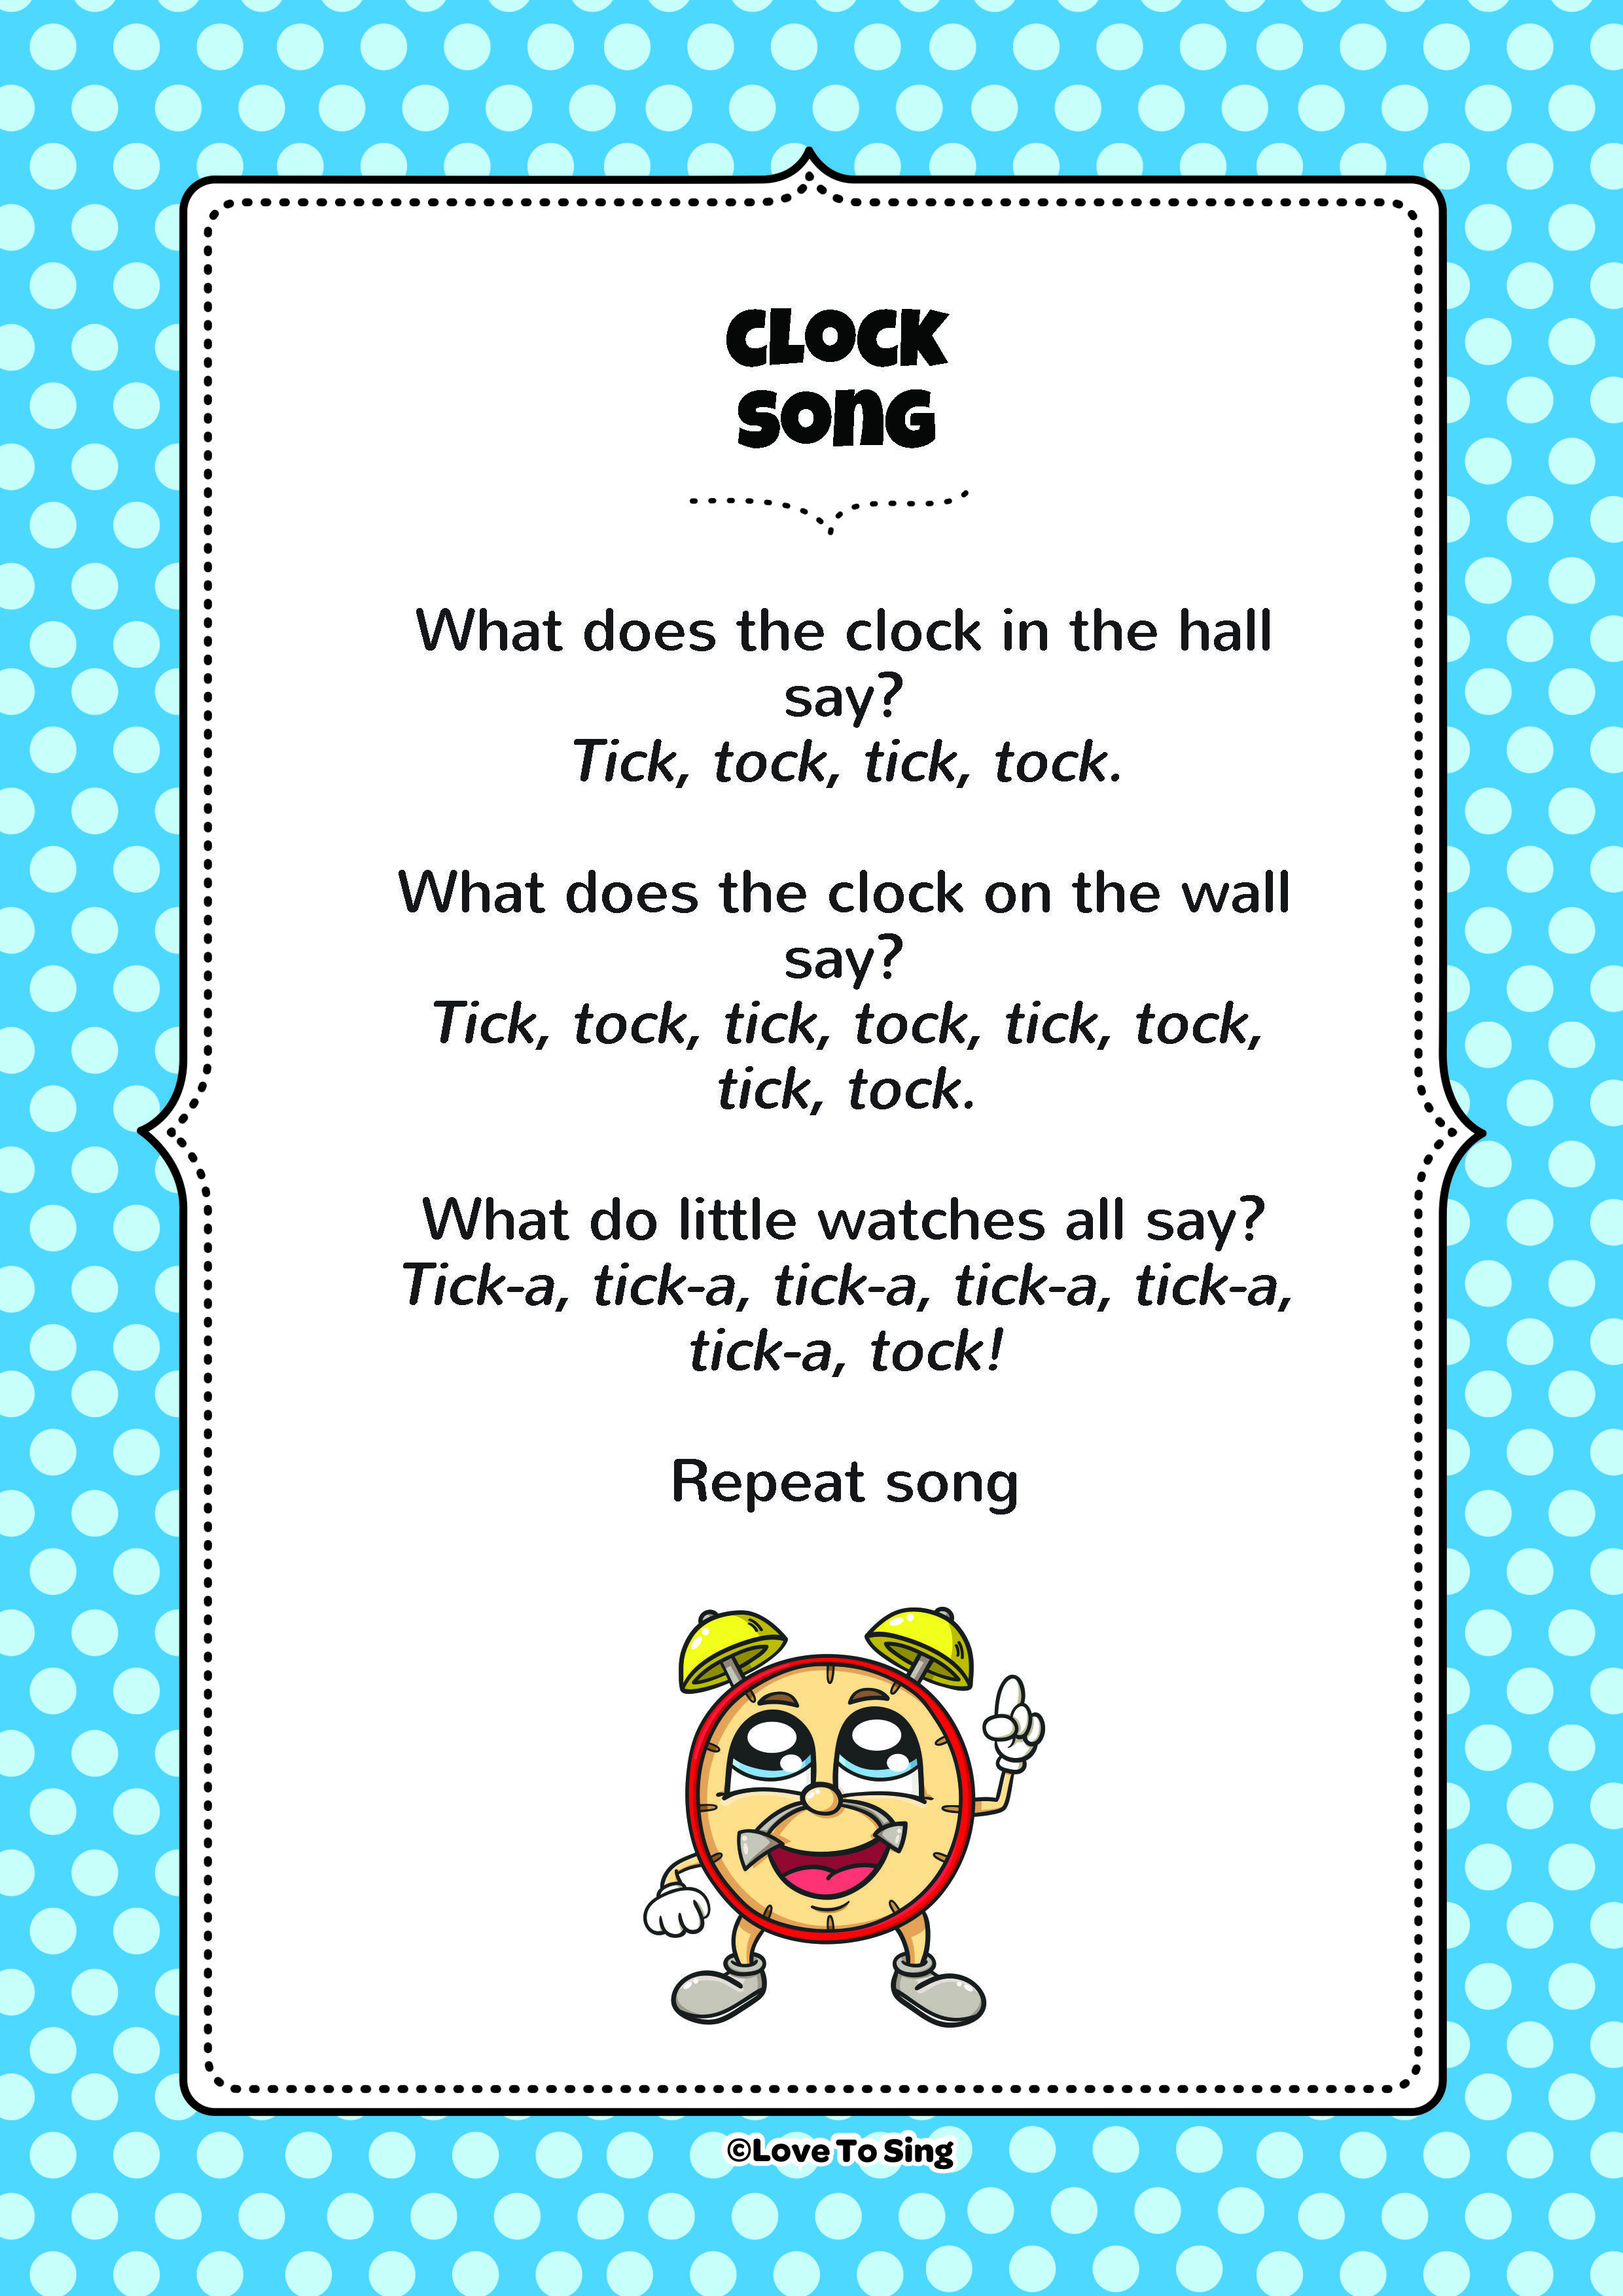 Clock Song Download The Free Lyrics From Our Website